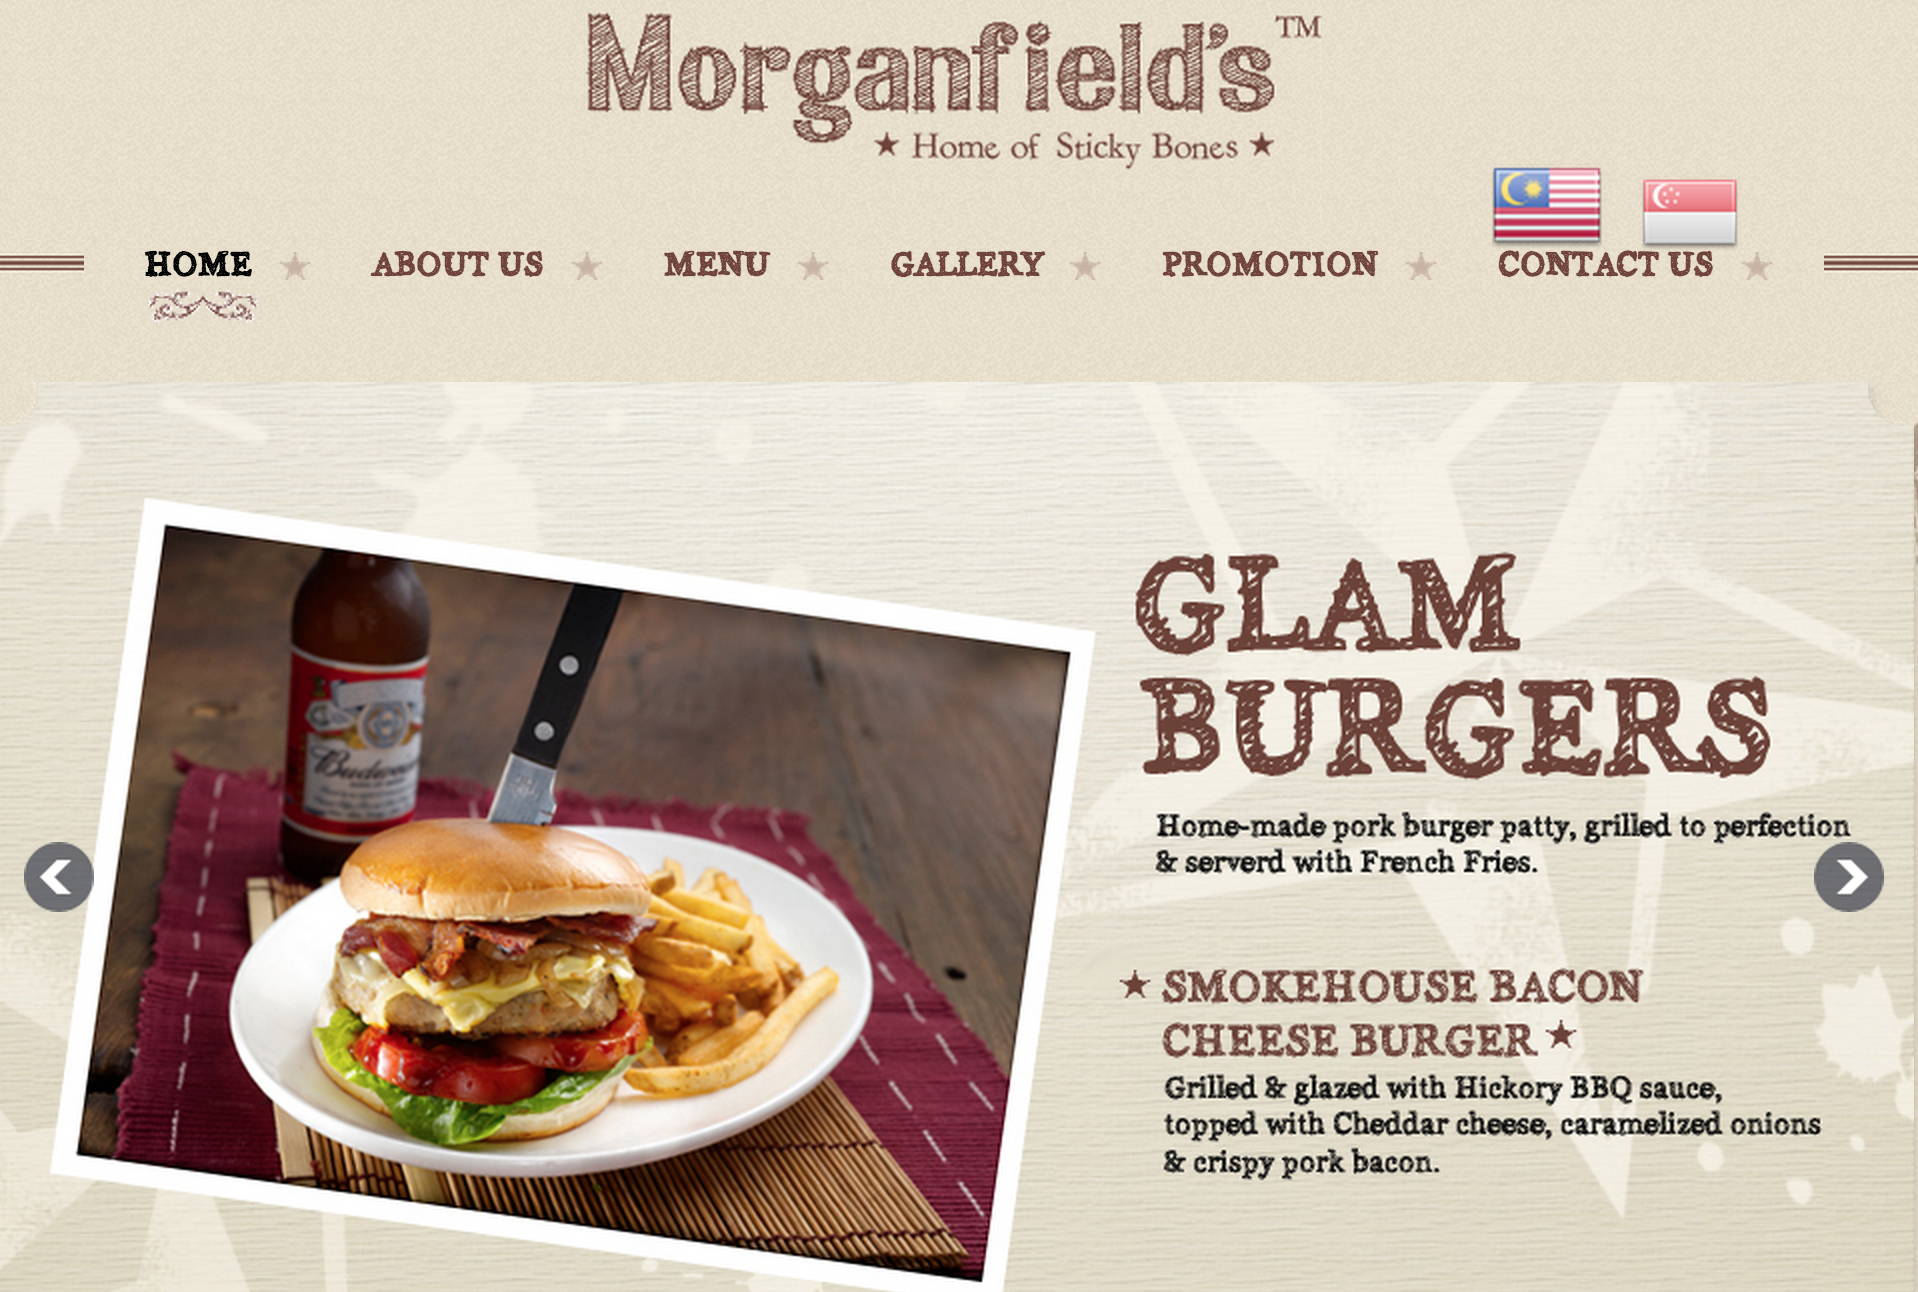 Morganfield's Singapore